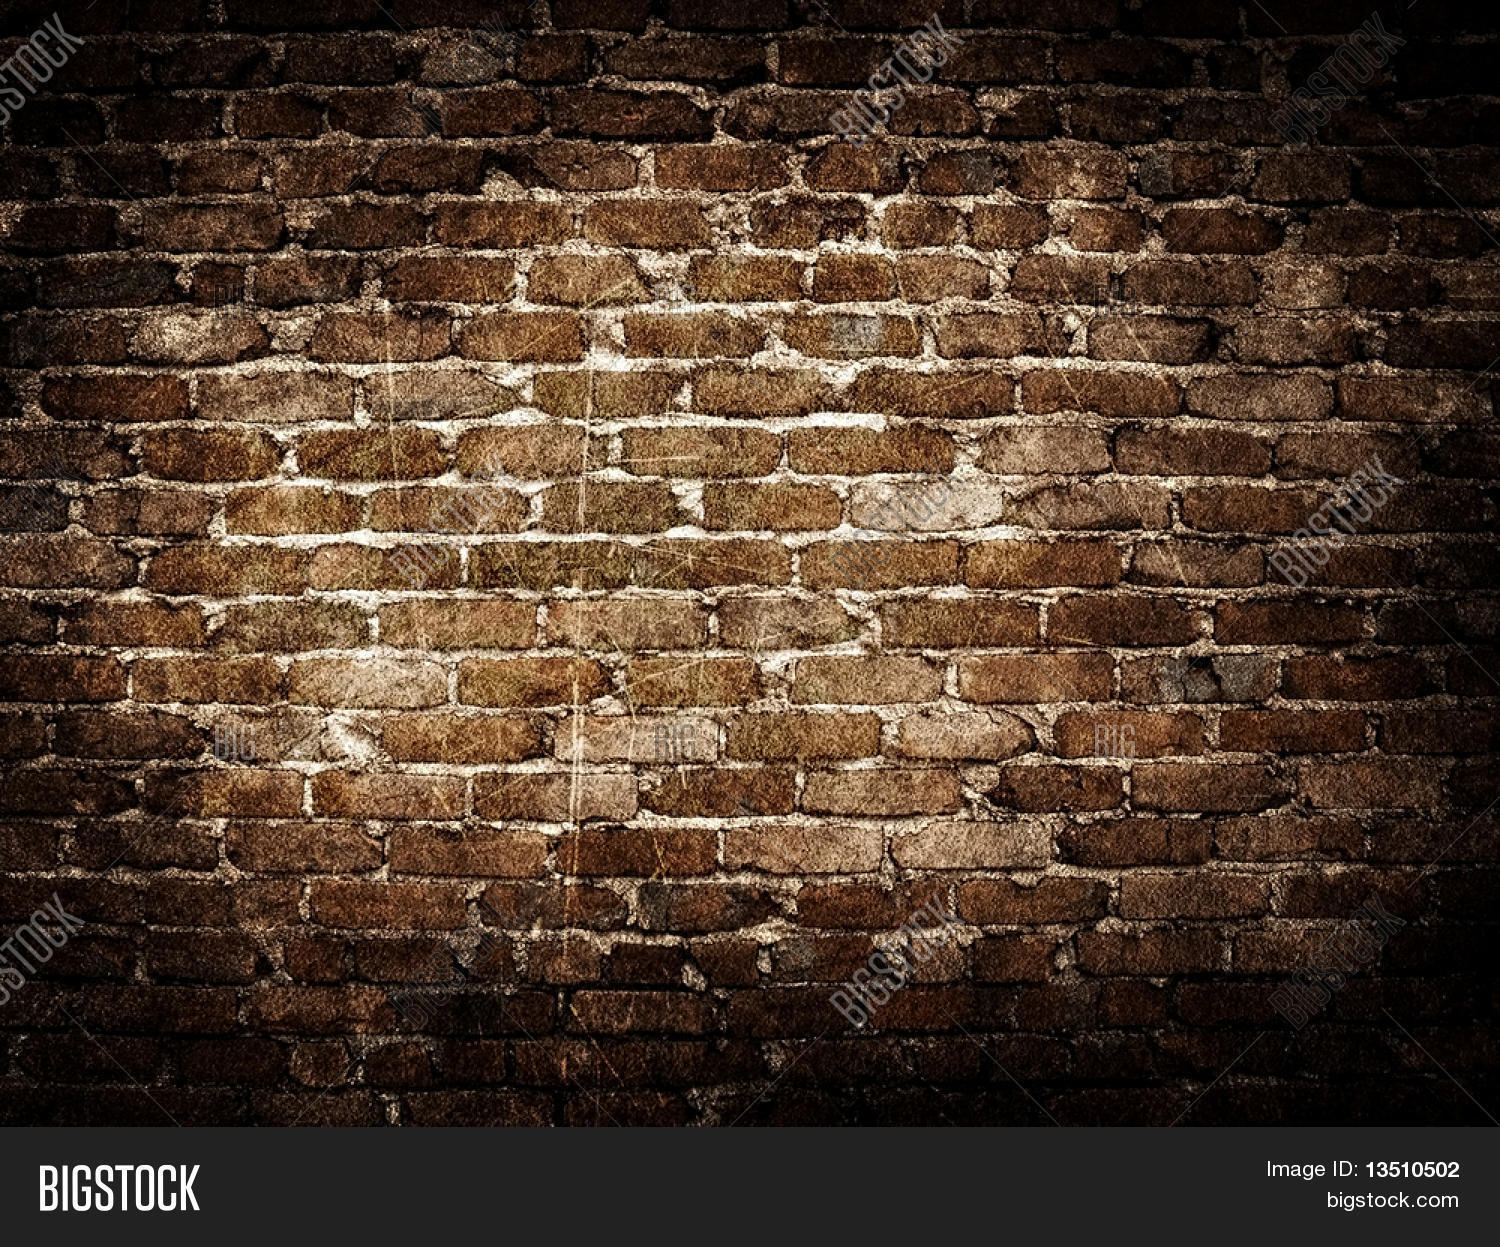 Grunge brick wall background image photo bigstock for Big wallpaper for wall